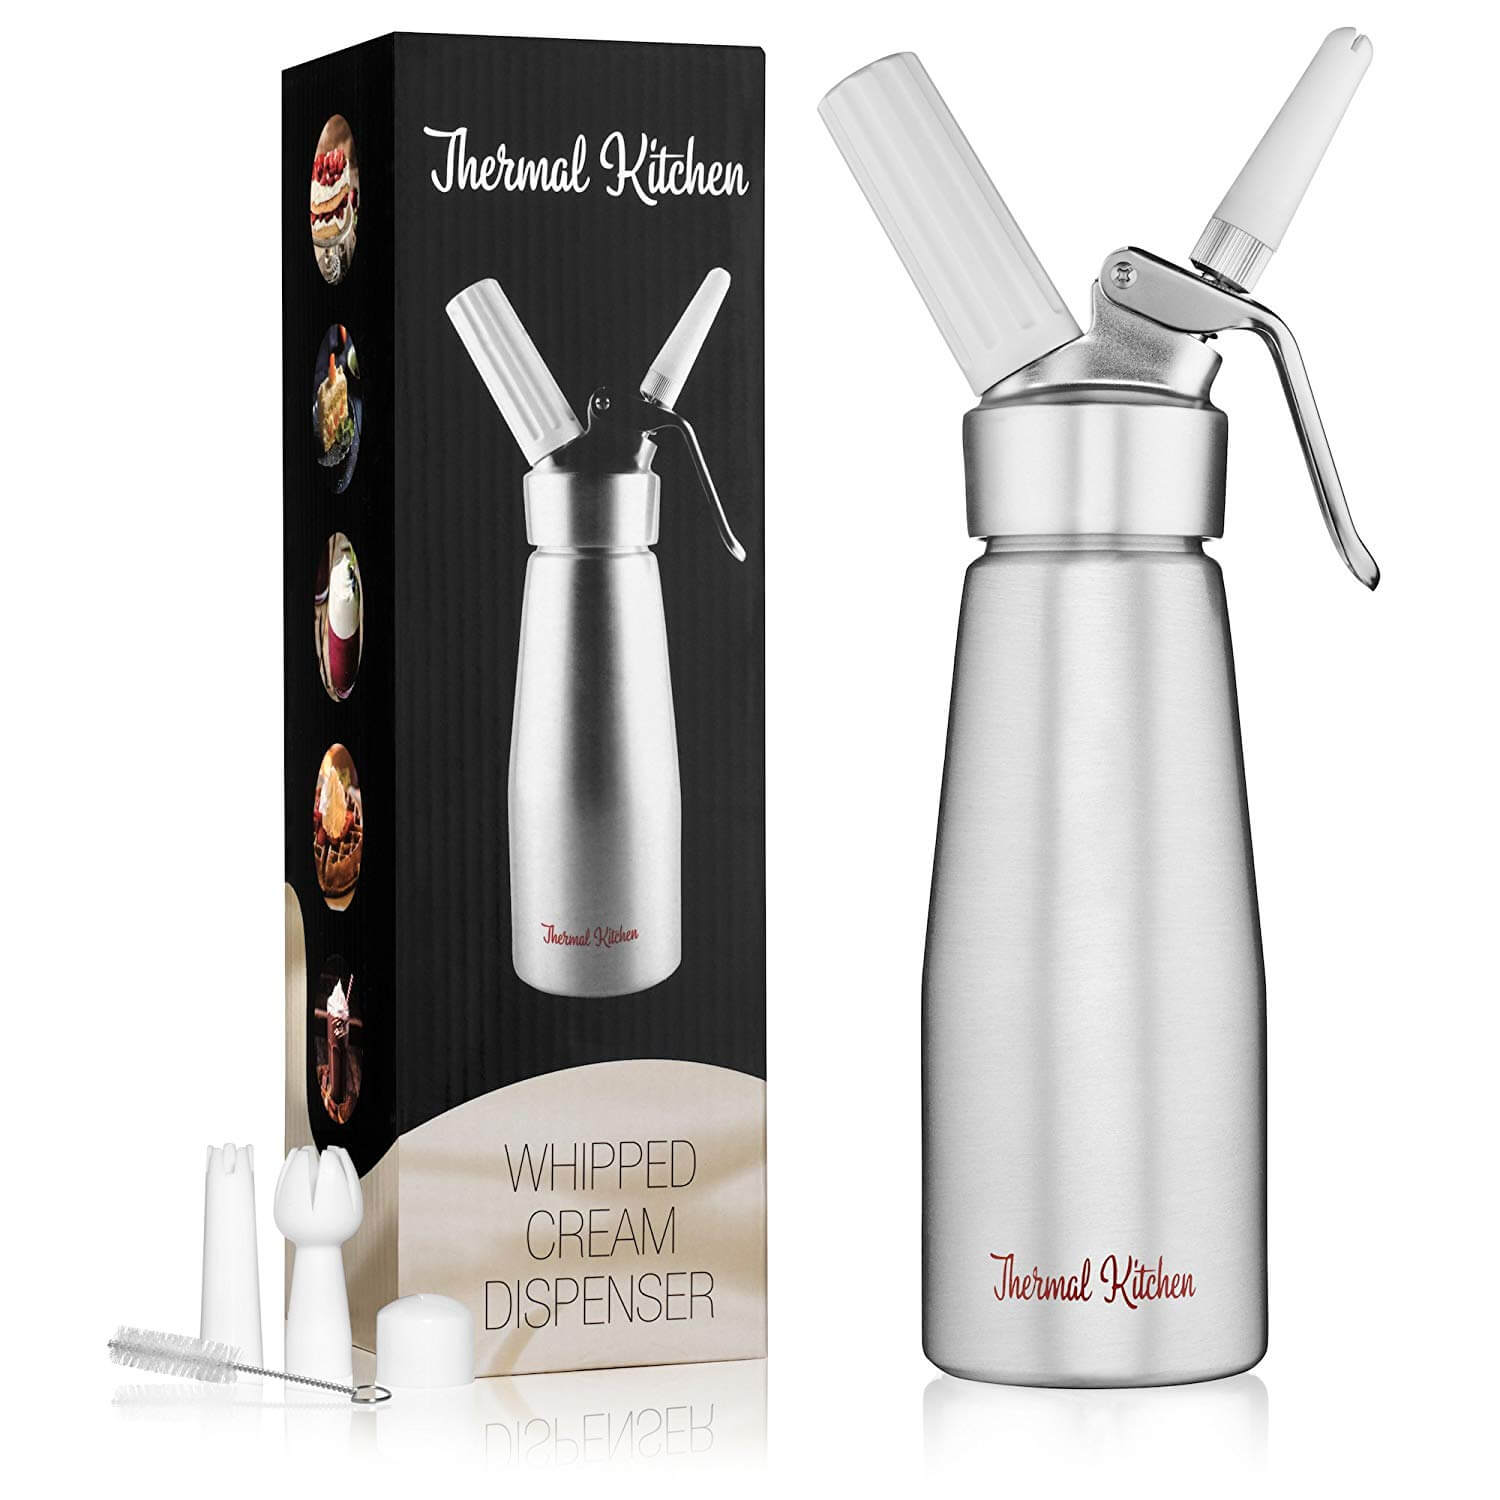 Thermal Kitchen whipped cream dispenser